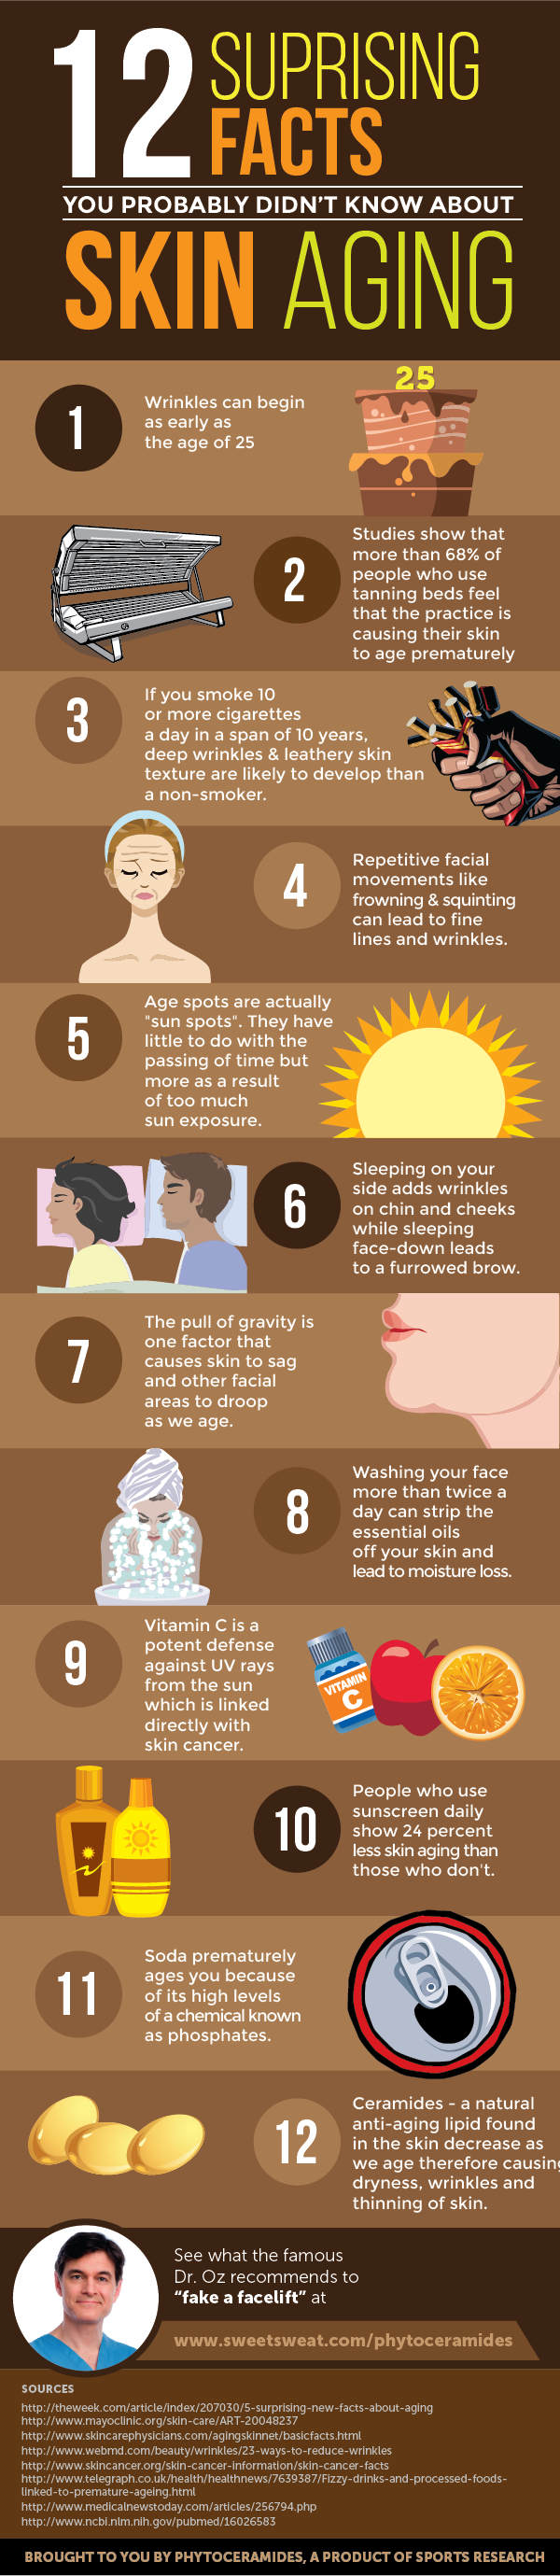 Facts About anti aging skin care